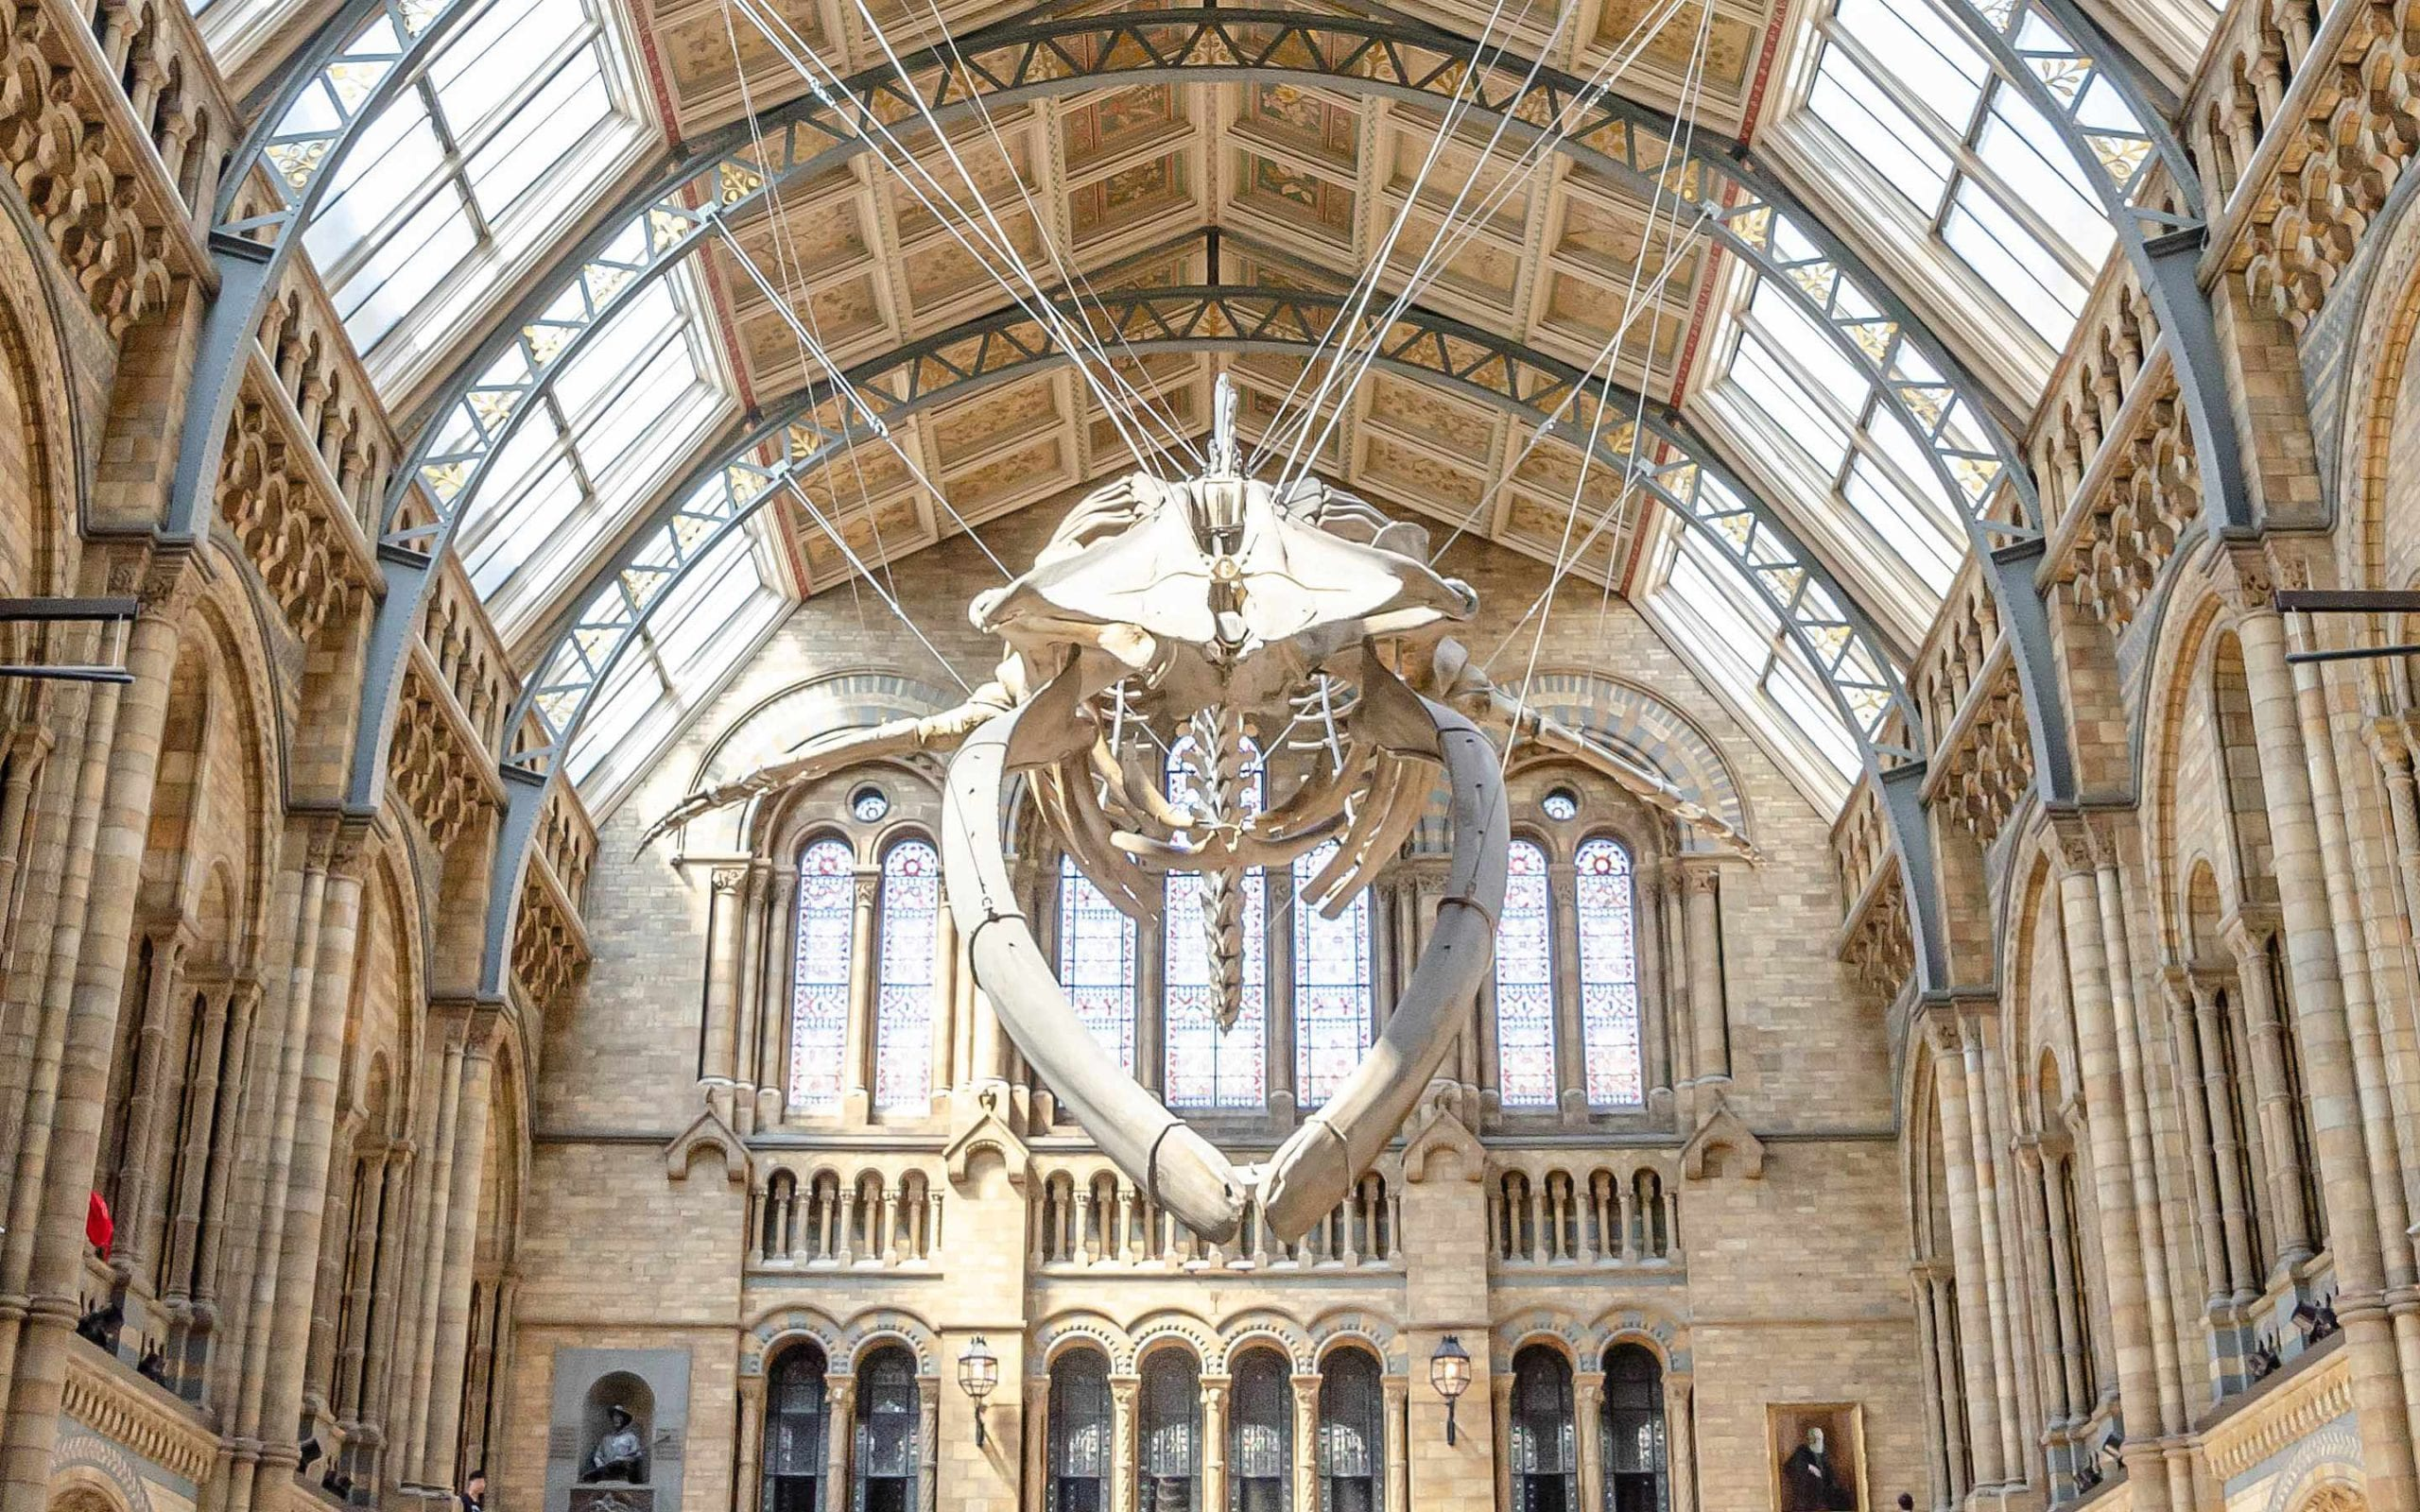 Grand hall featuring ornate brick walls and stained glass windows, with a whale skeleton suspended from the ceiling